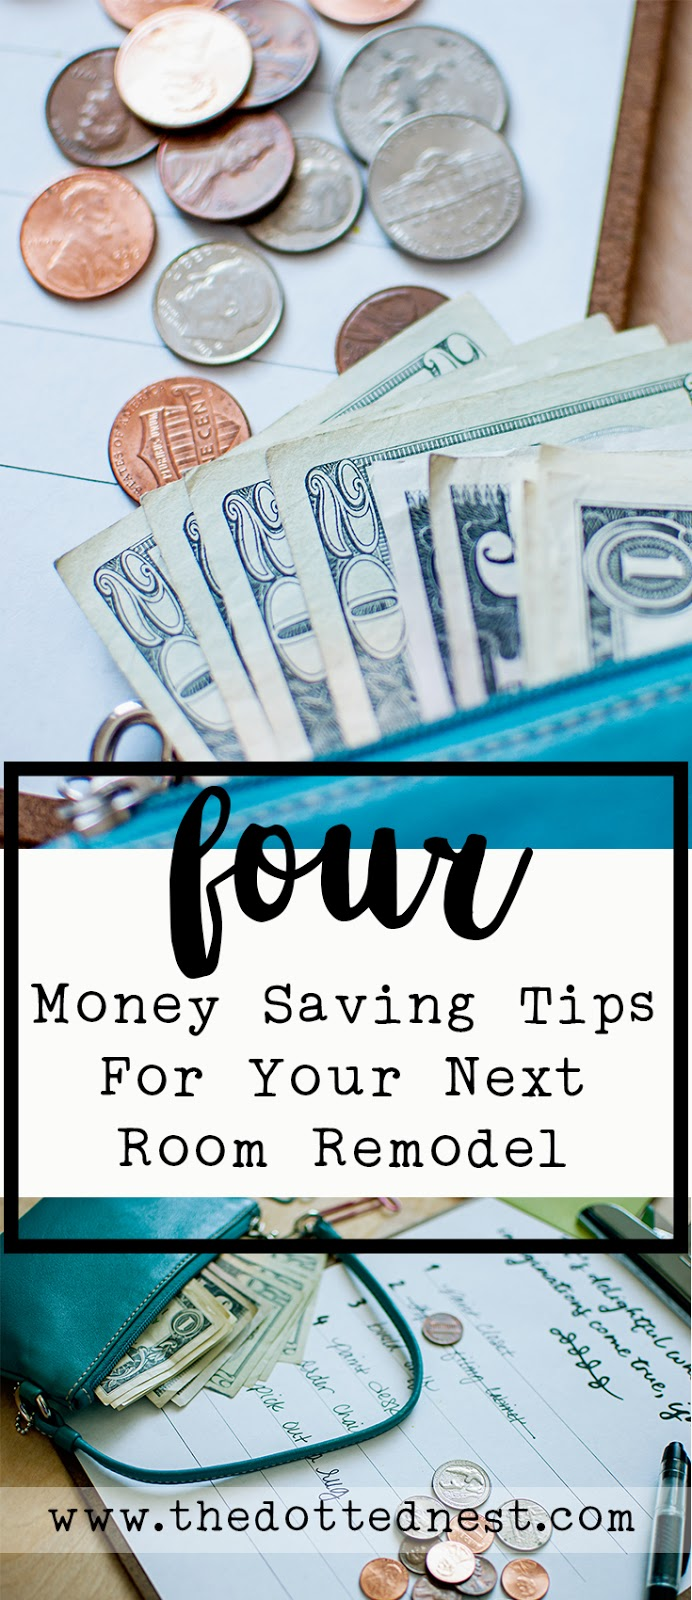 Four Money Saving Tips For Your Next Room Remodel